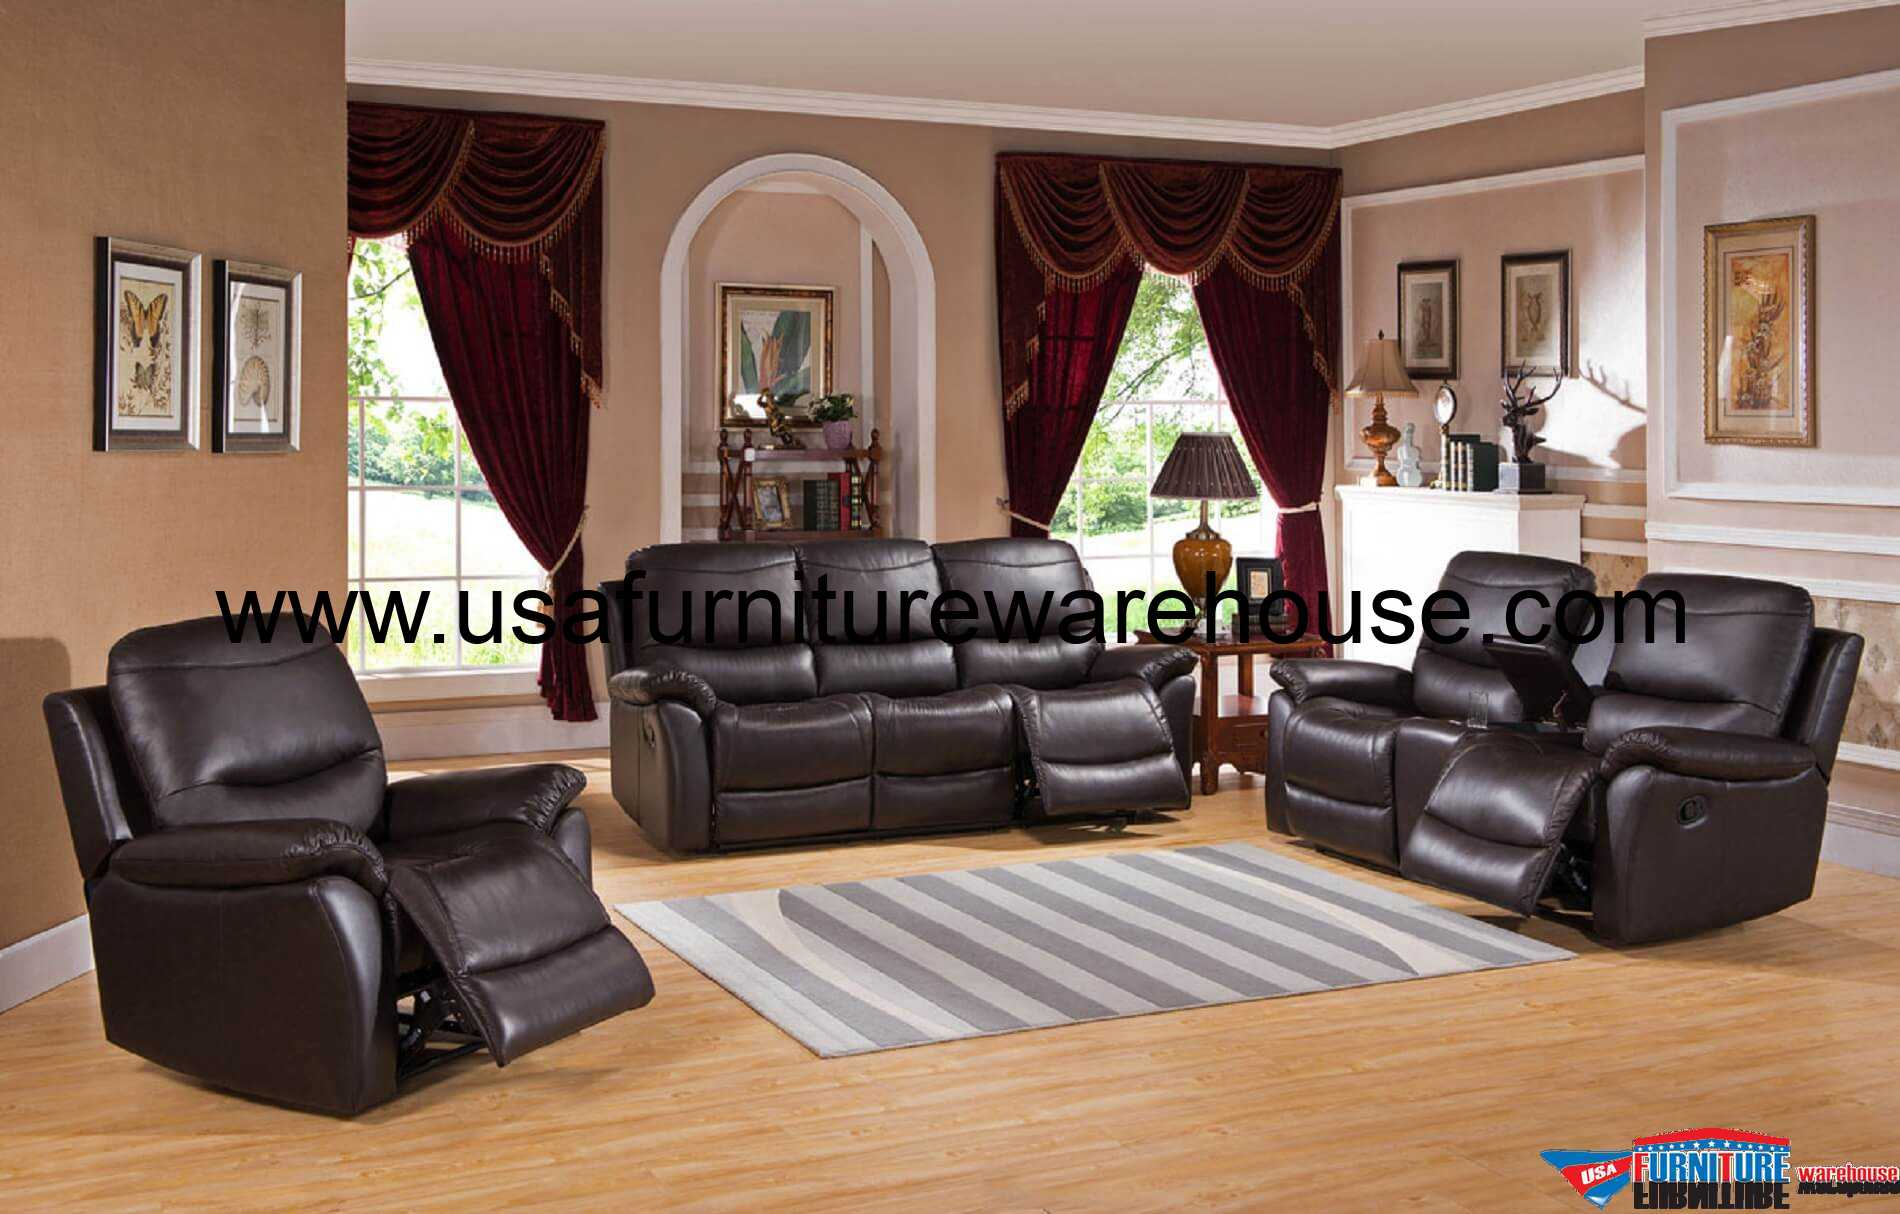 3 piece toddler sofa set daybed india pisa top grain leather reclining